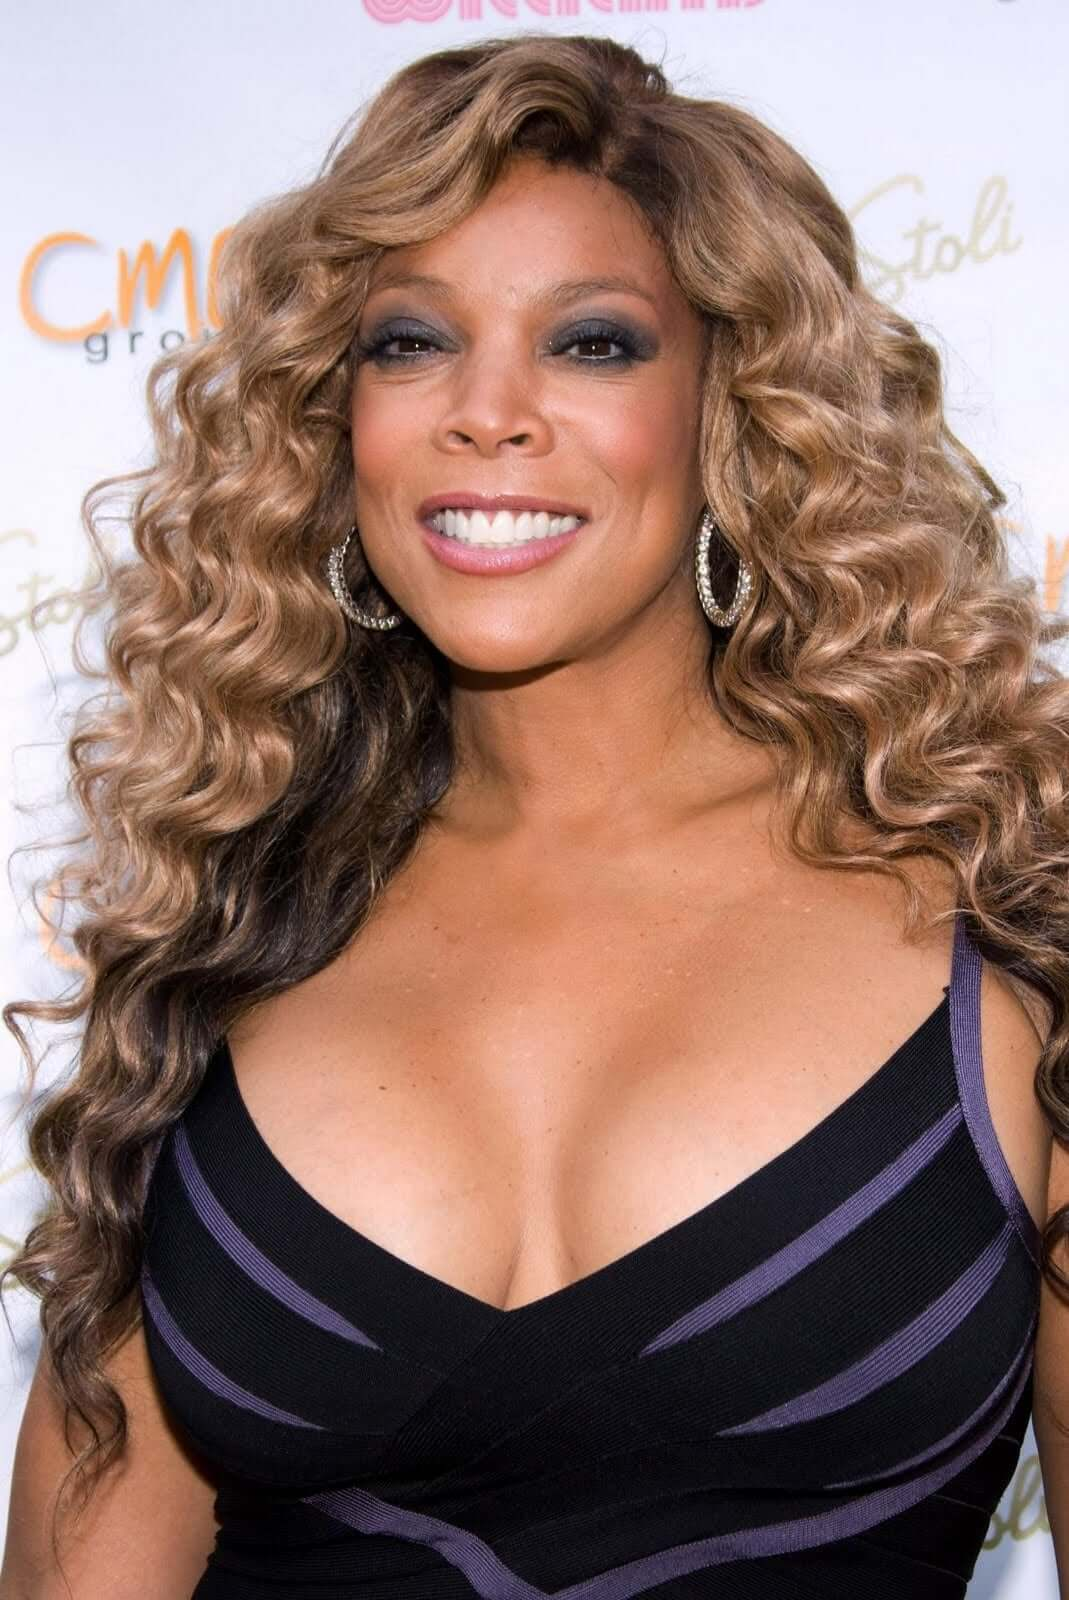 wendy williams cleavage photo